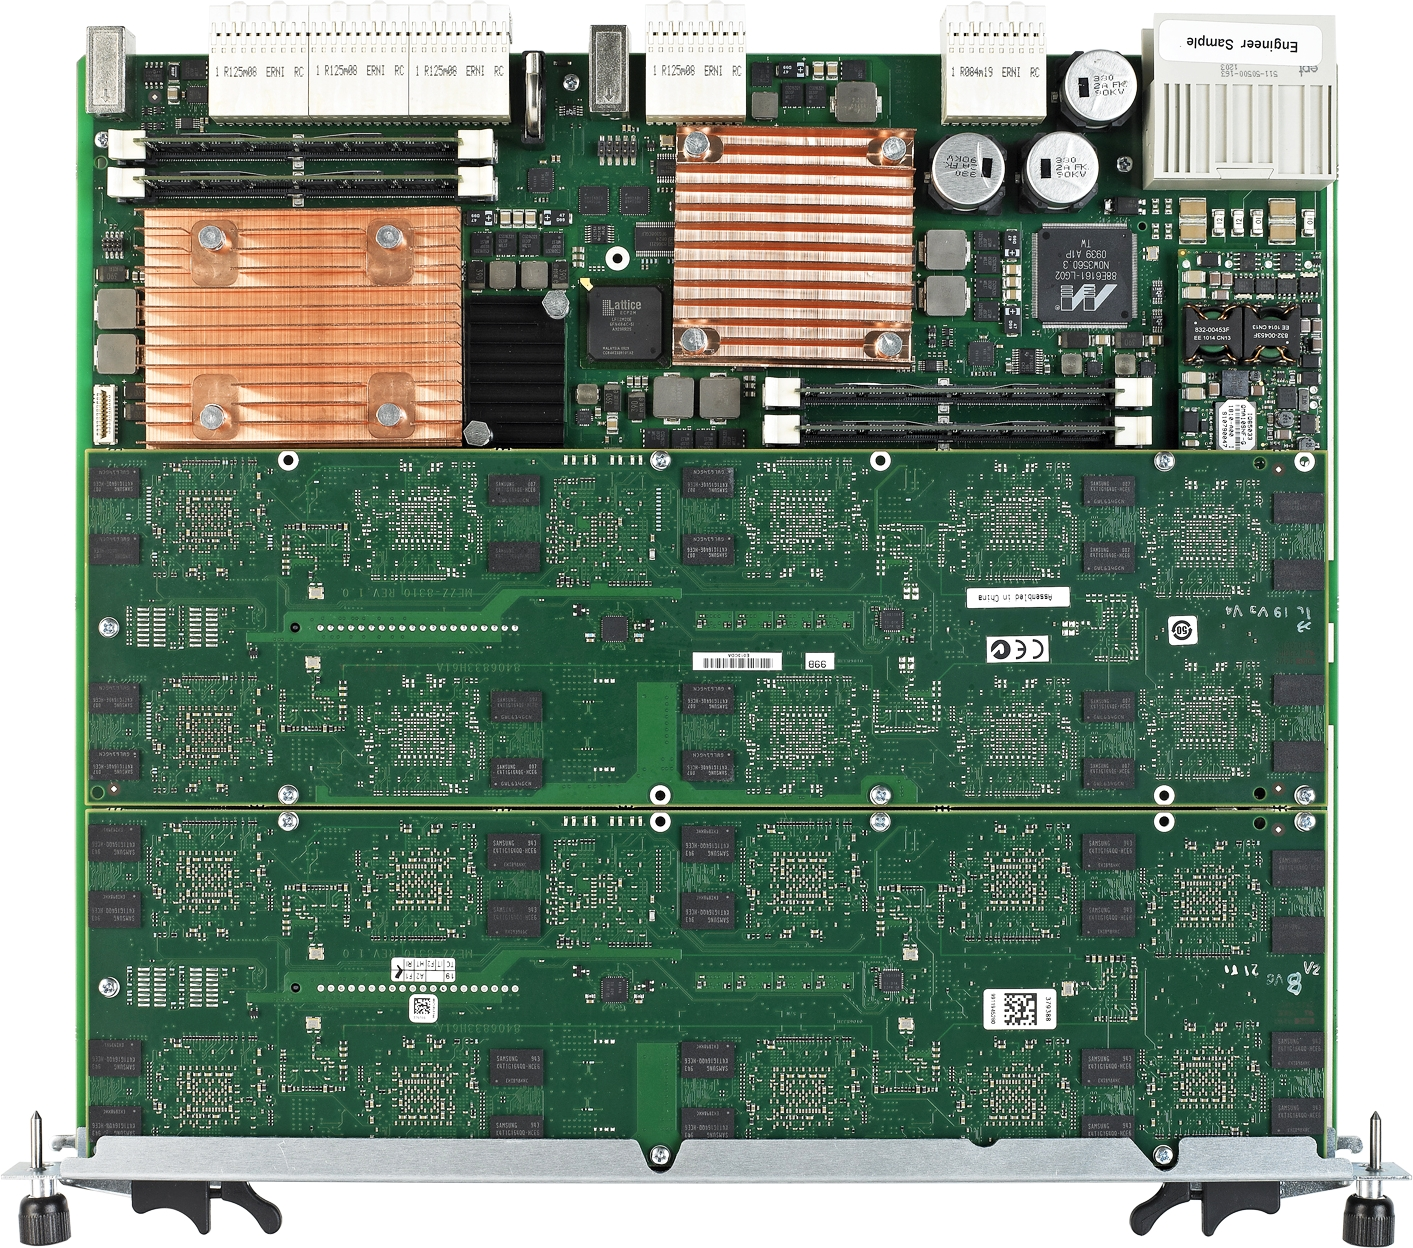 Emerson Network Power's ATCA Blade for Media Gateways Sets New Standards for Density, Performance and Flexibility